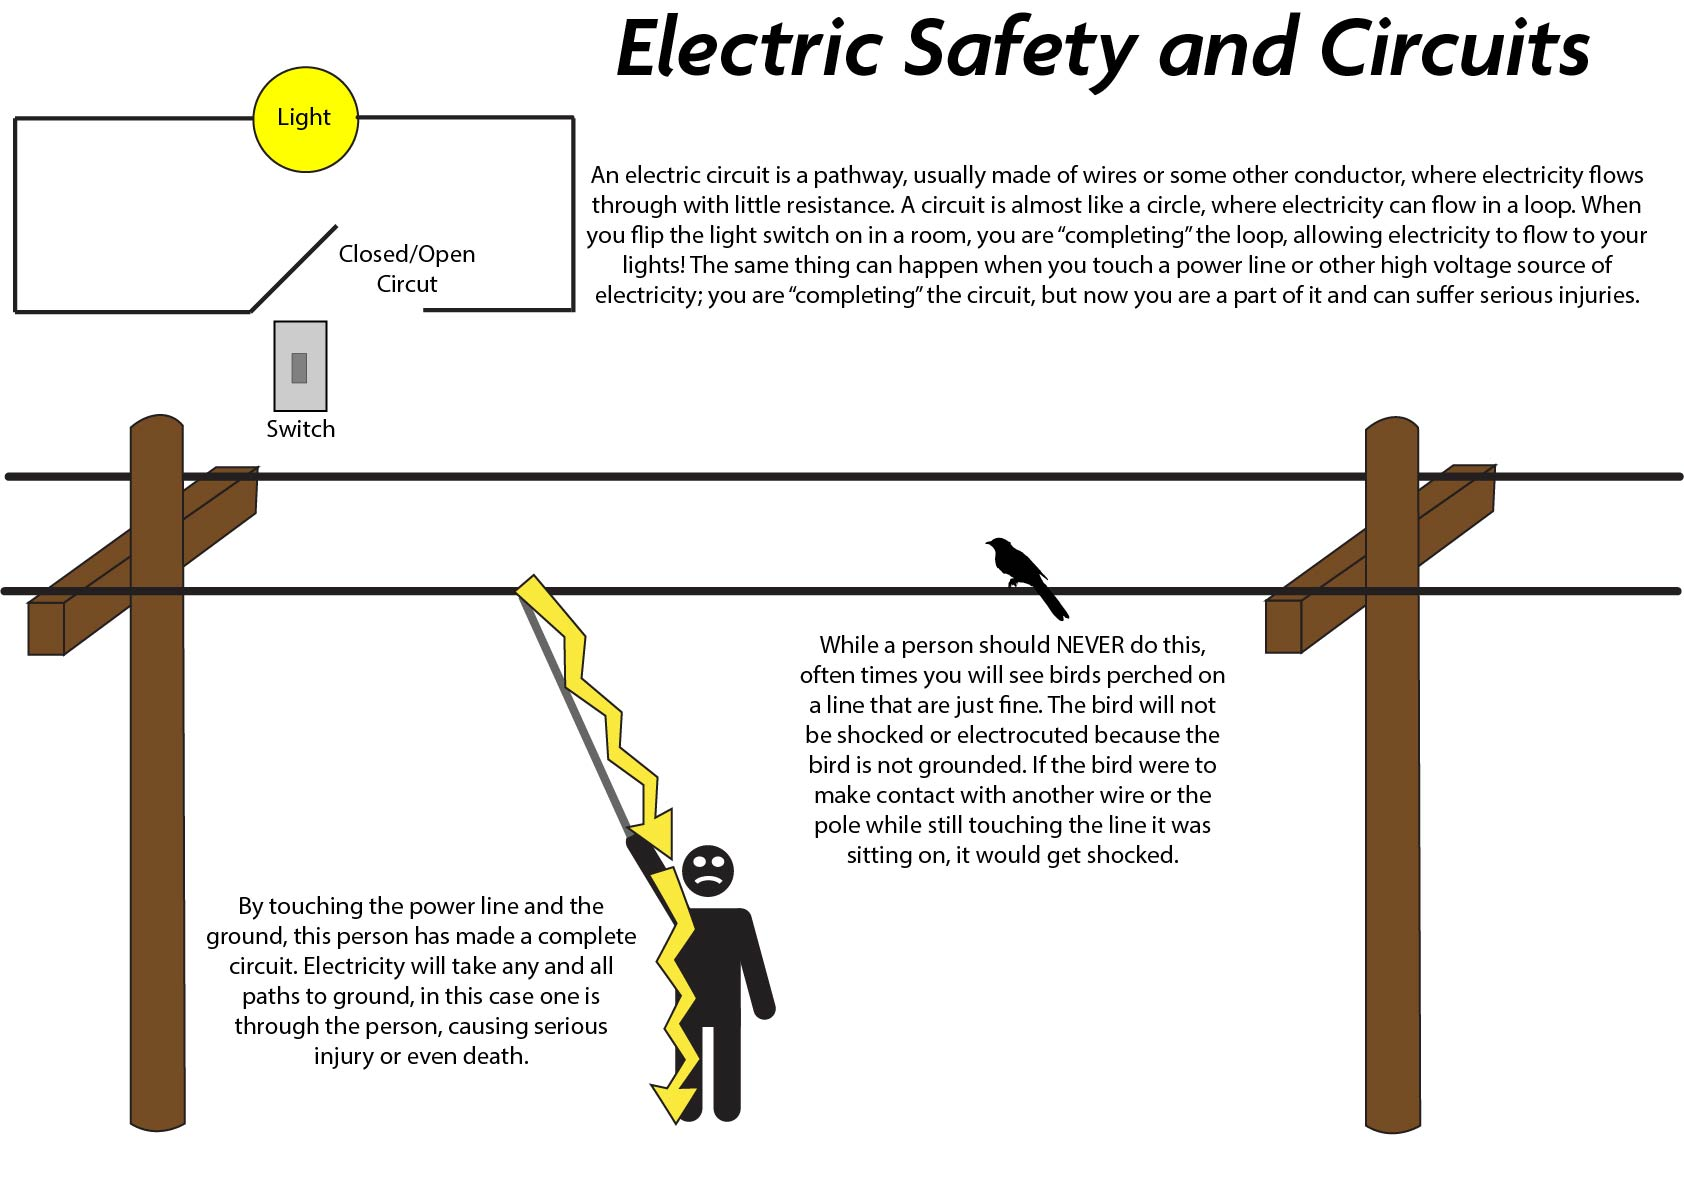 Safety Pioneer Electric How To Make Circuit The Dangers Of Working Around Electricity